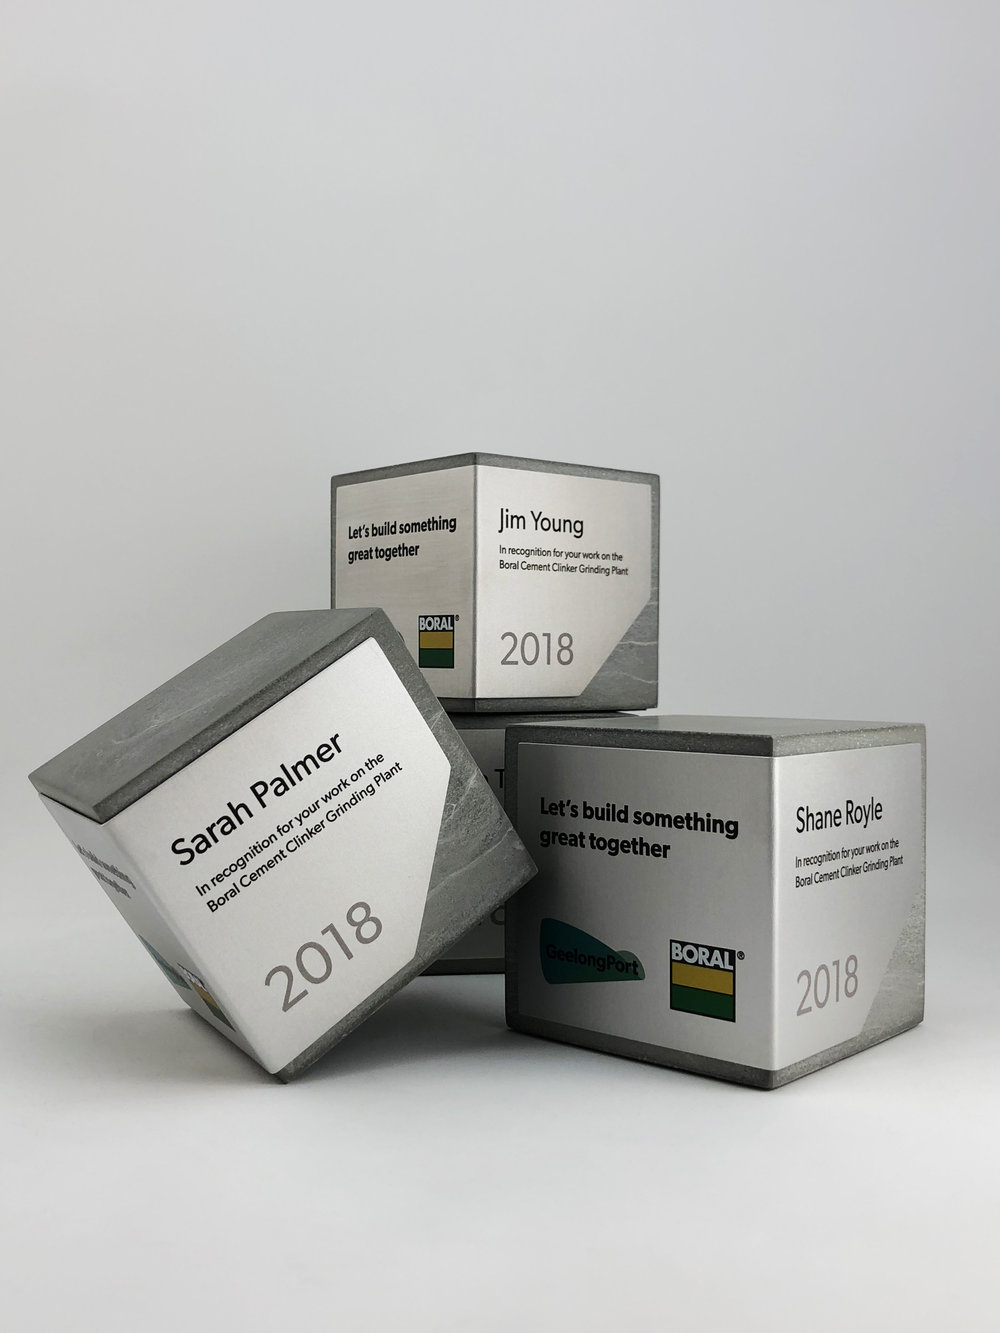 geelong-port-cement-cube-awards-trophy-07.jpg